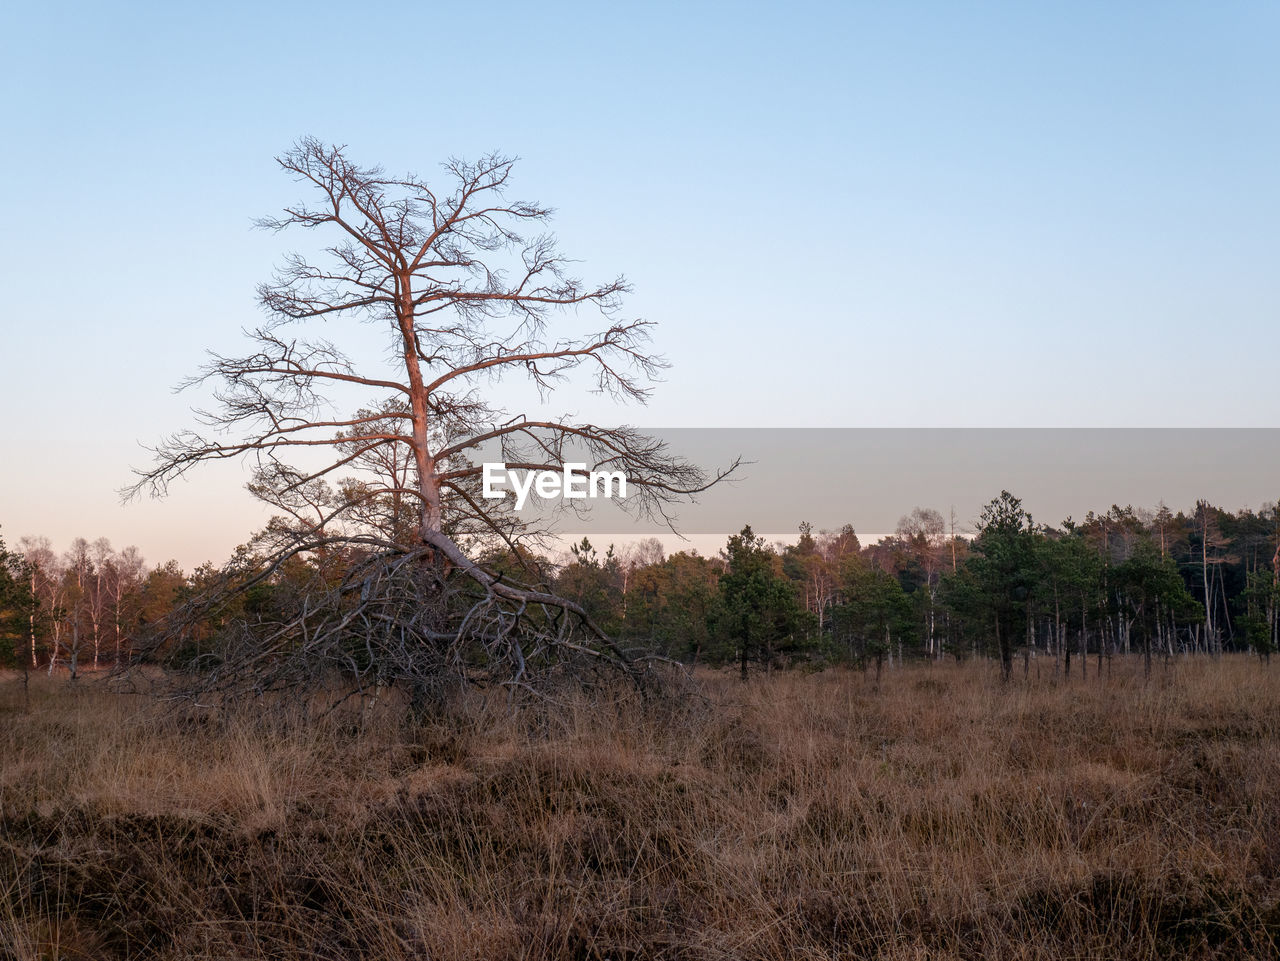 plant, sky, tree, land, field, tranquility, landscape, tranquil scene, beauty in nature, scenics - nature, environment, nature, clear sky, non-urban scene, no people, growth, grass, day, remote, outdoors